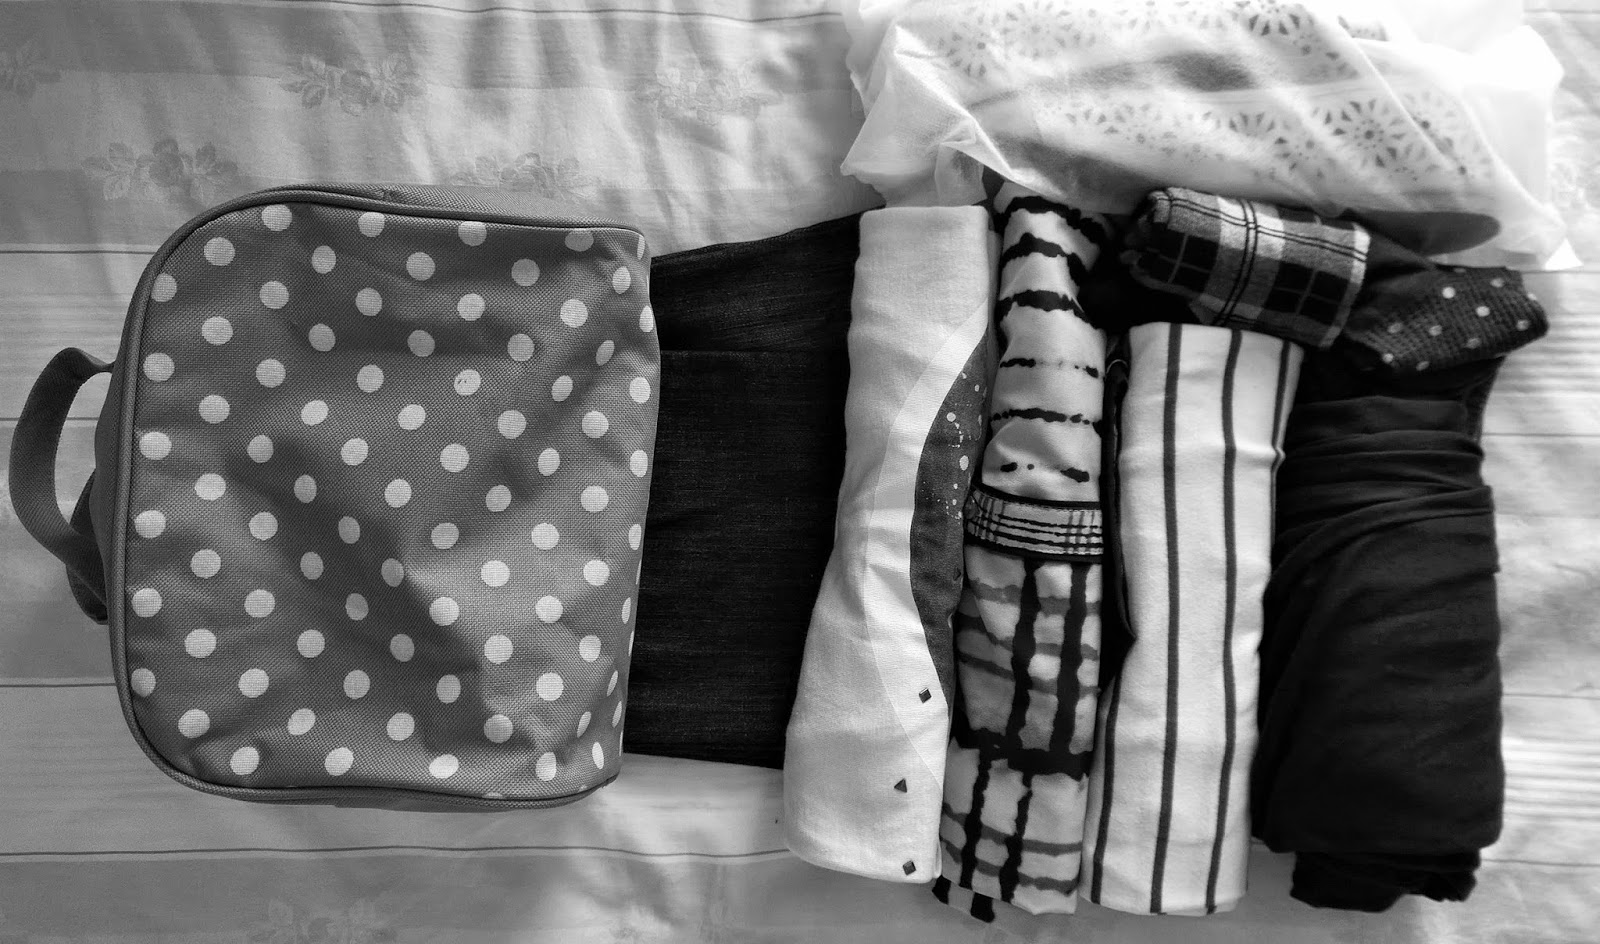 Rolled up clothing for packing a suitcase efficiently | Funky Jungle - Mindful fashion, life & quirky personal style